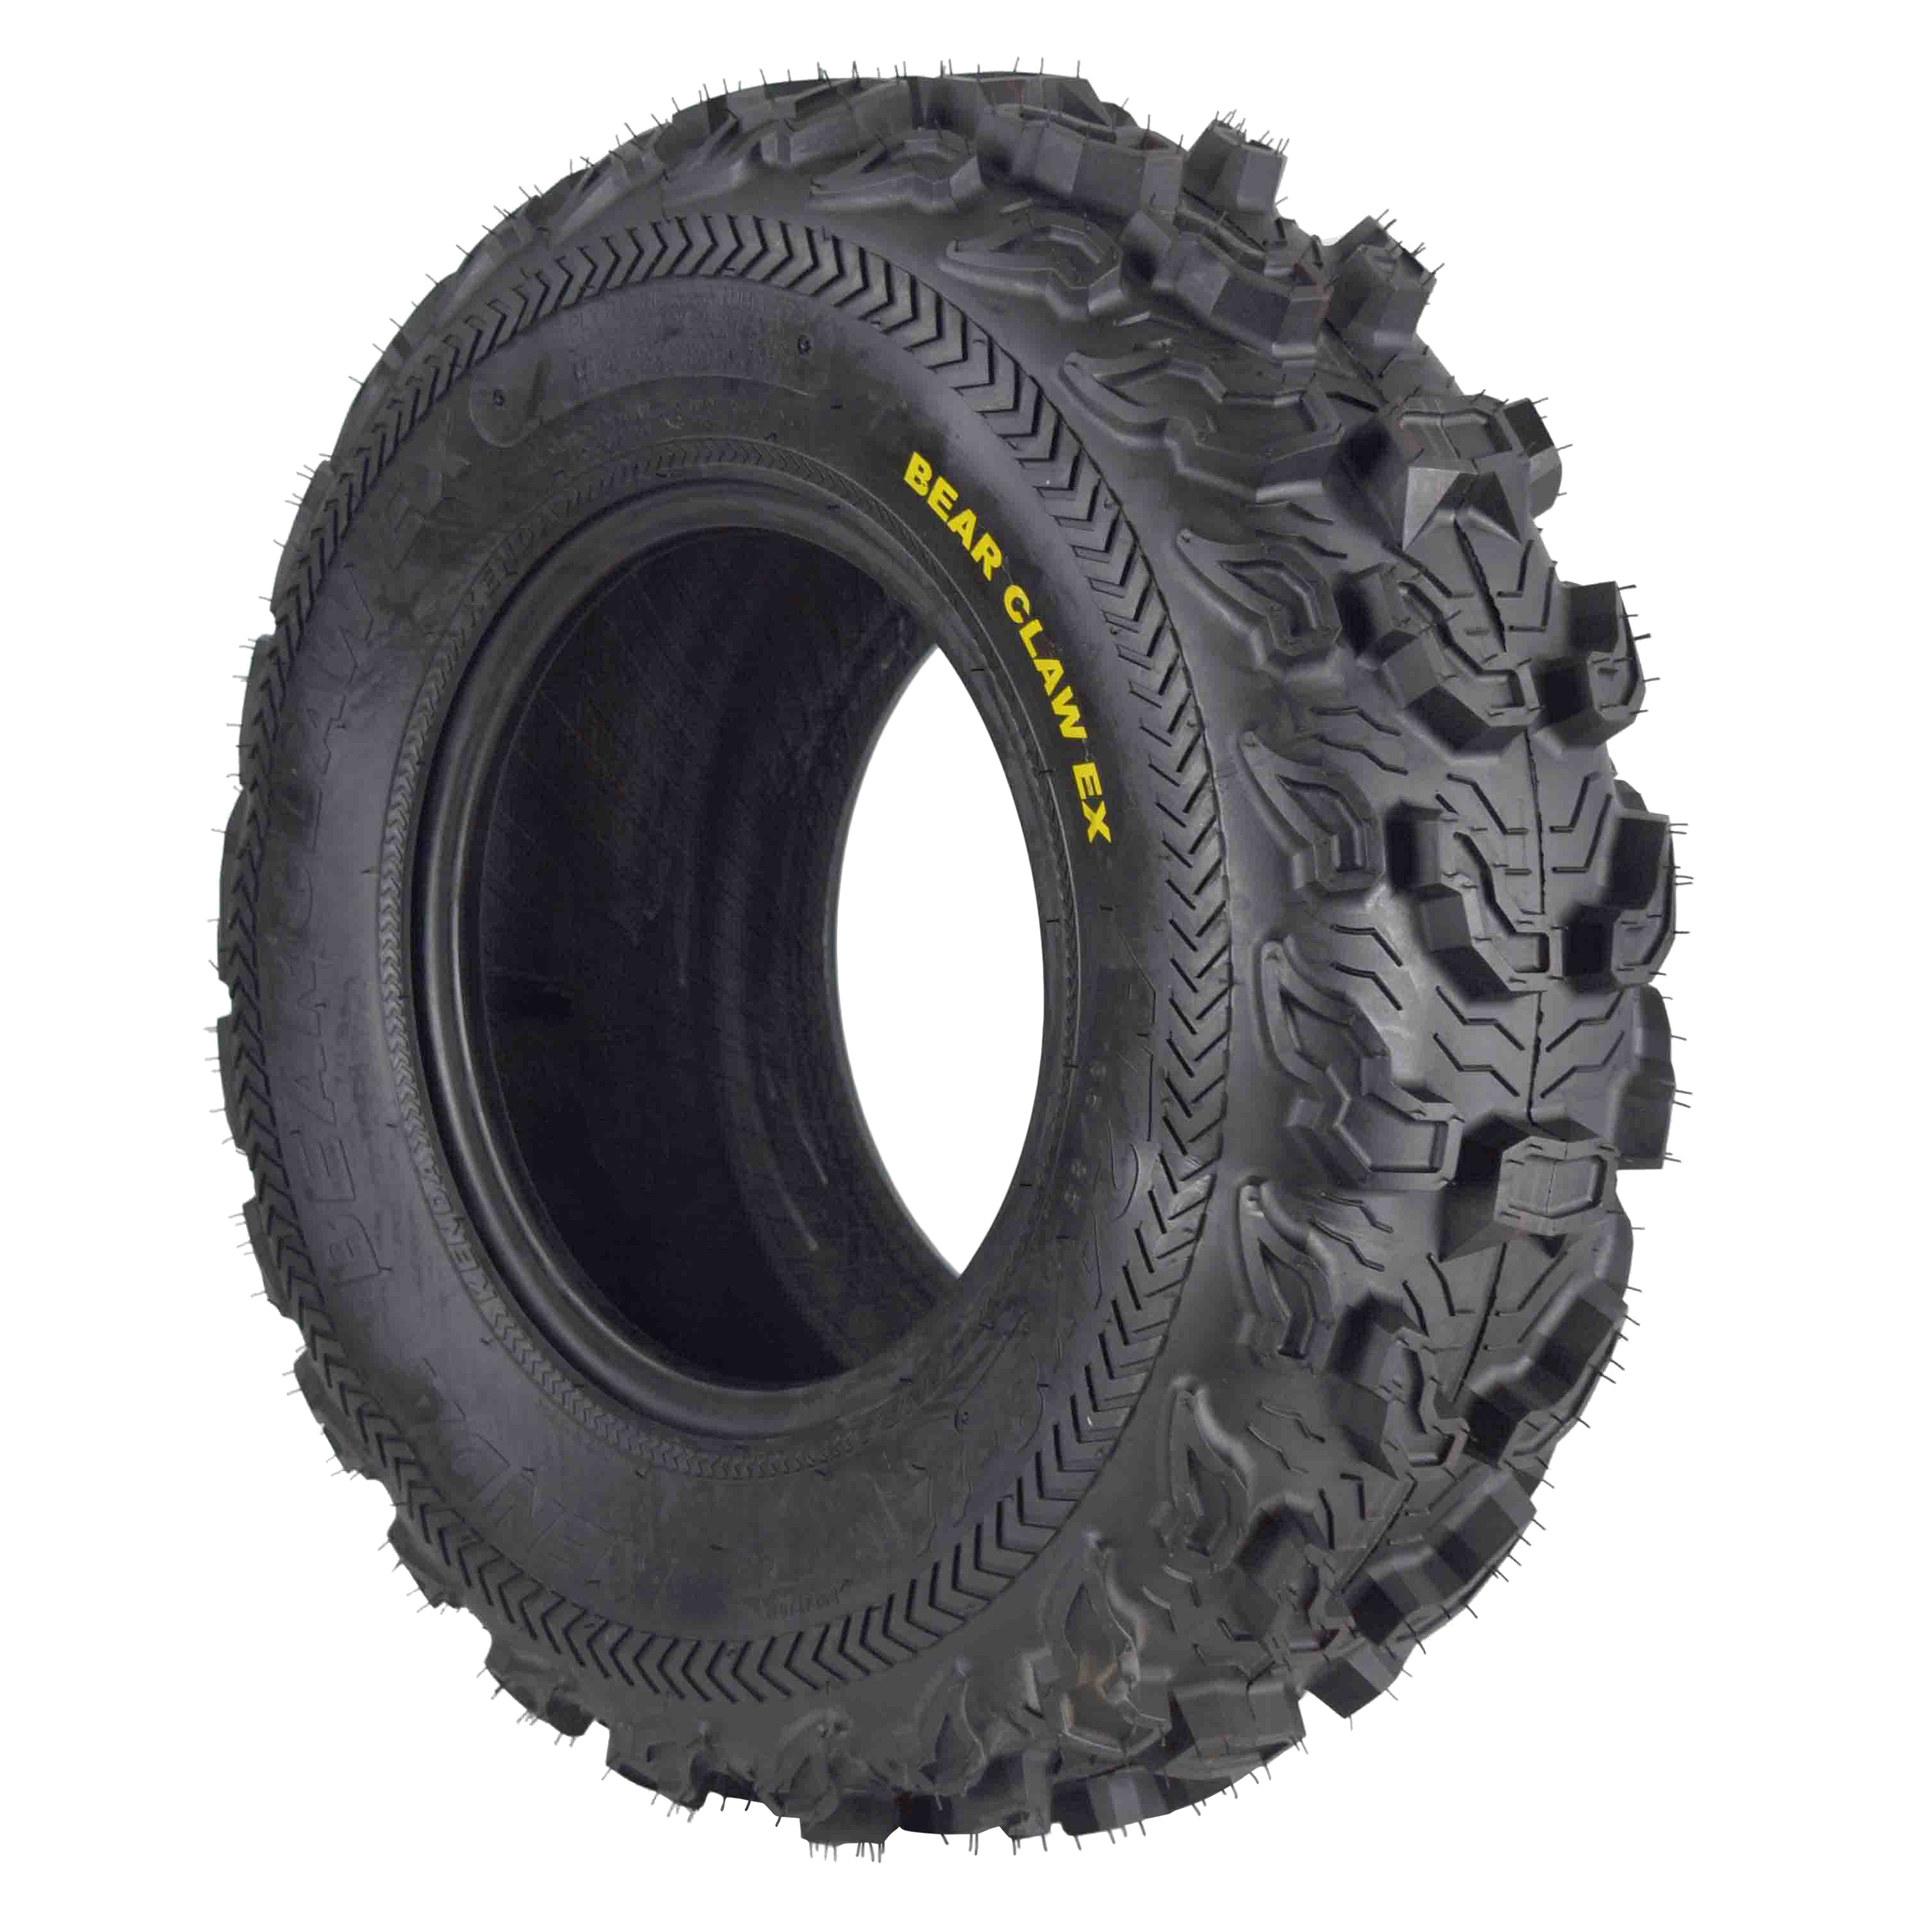 Kenda-Bear-Claw-EX-24x8-11-Front-ATV-6-PLY-Tire-Bearclaw-24x8x11-Single-Tire-image-1